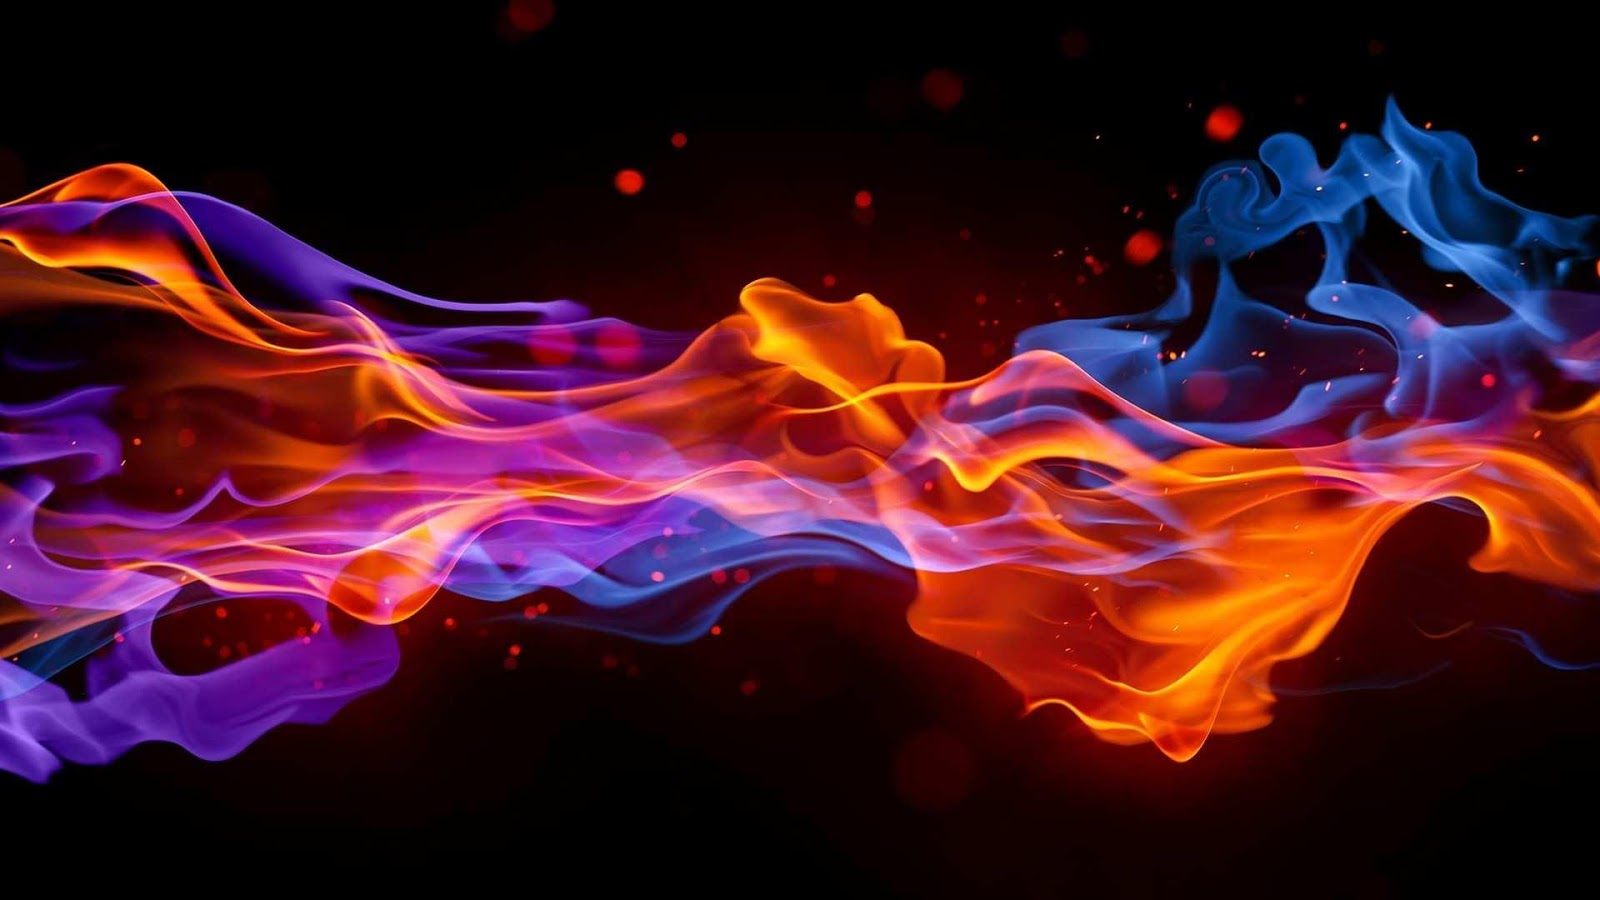 Fire And Ice Pics, Abstract Collection